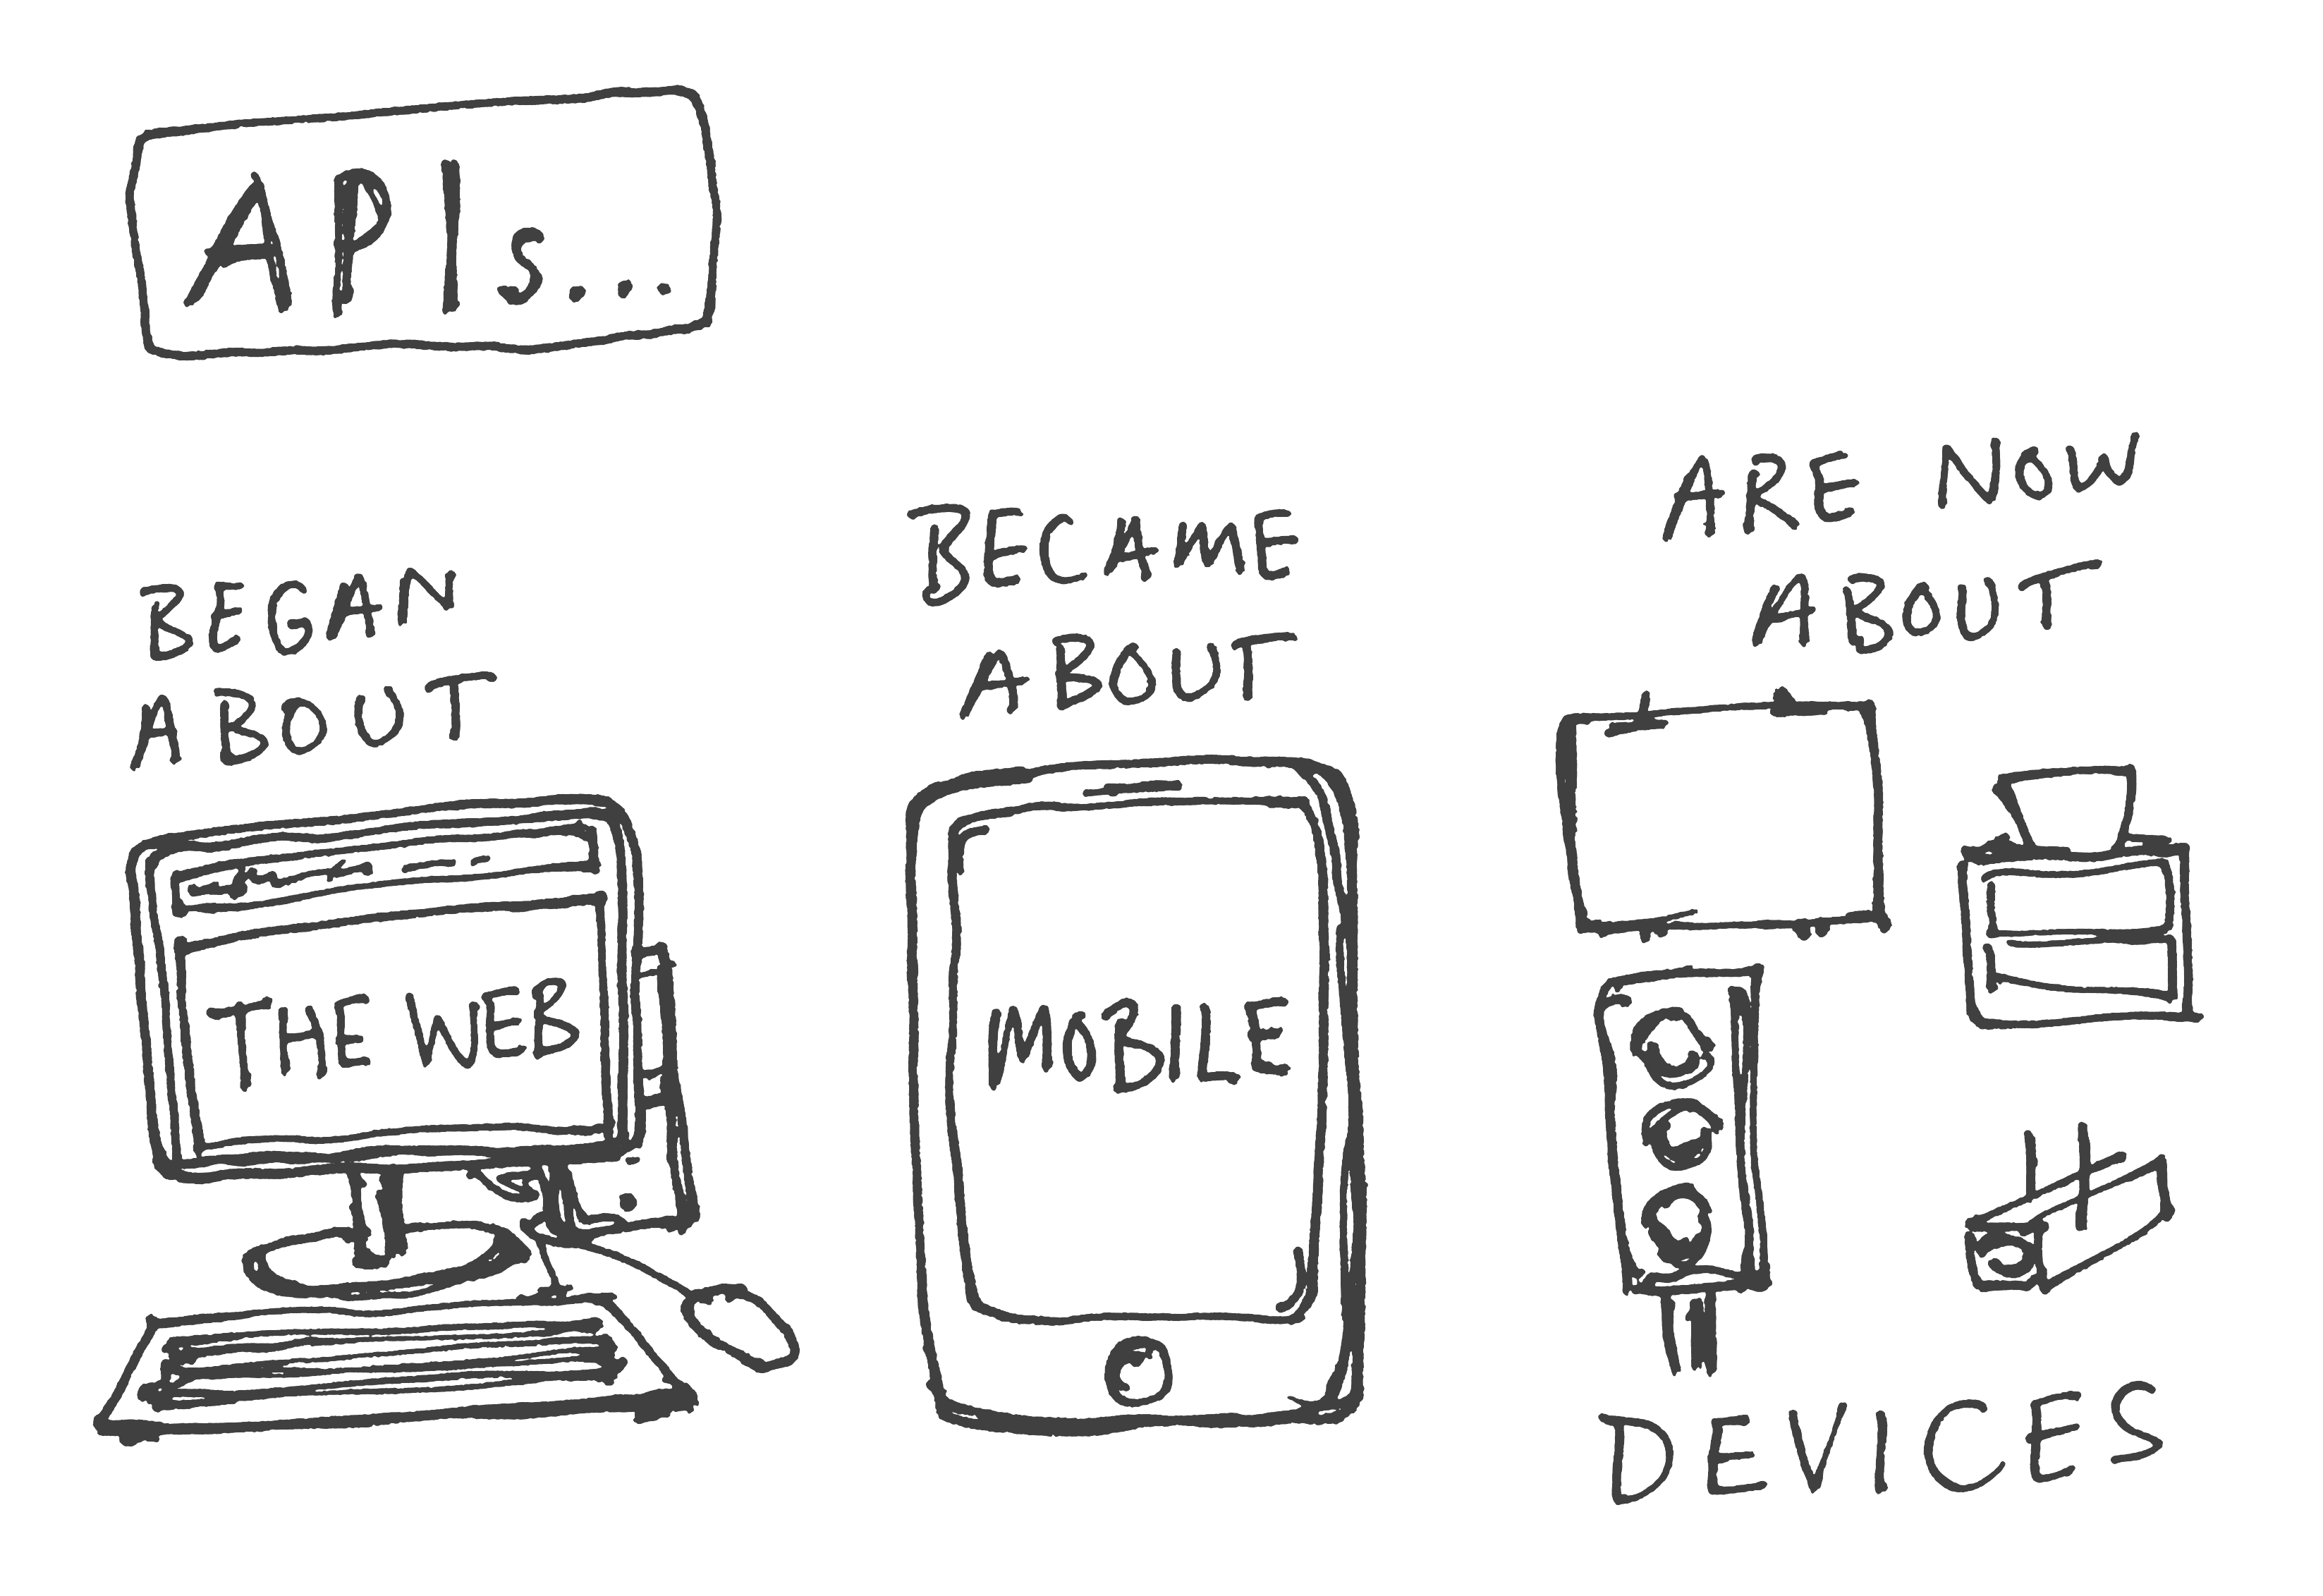 The story of APIs